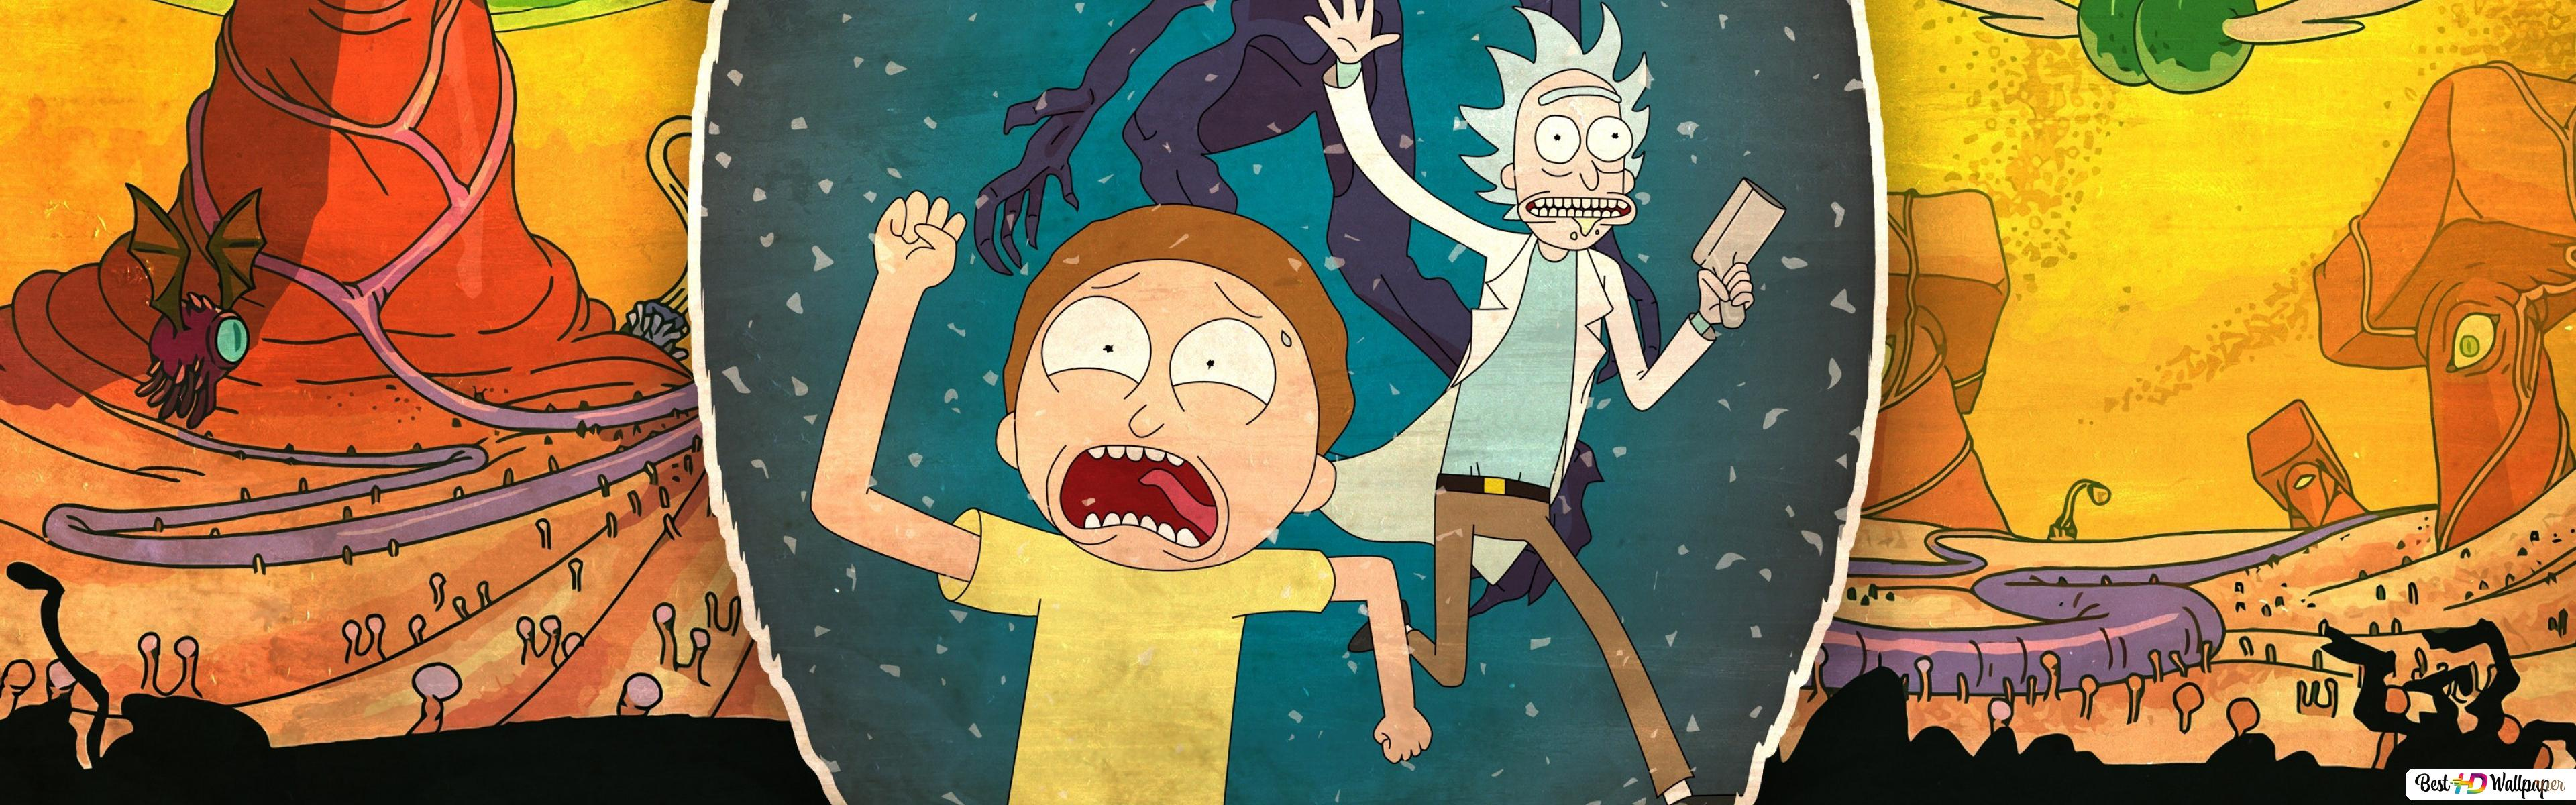 Rick And Morty And Monsters Hd Wallpaper Download